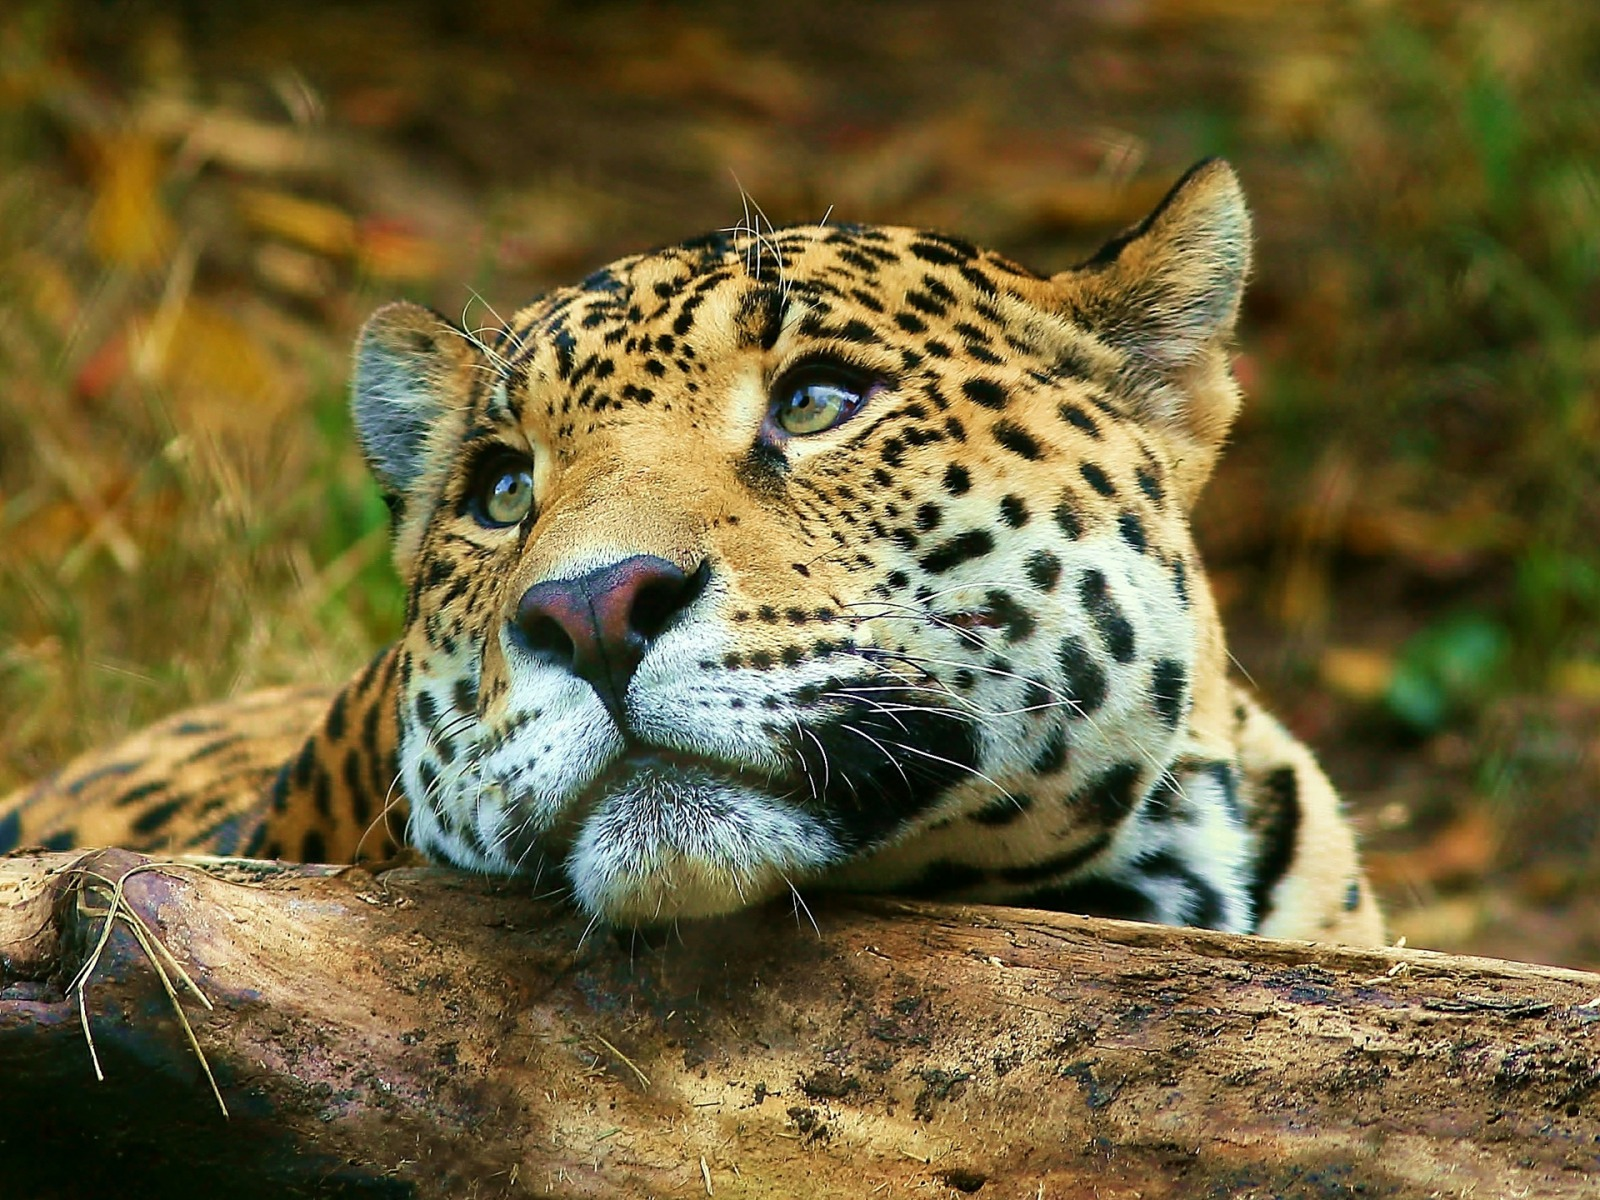 Leopard daydreaming Wallpaper Big Cats Animals Wallpapers in jpg ...